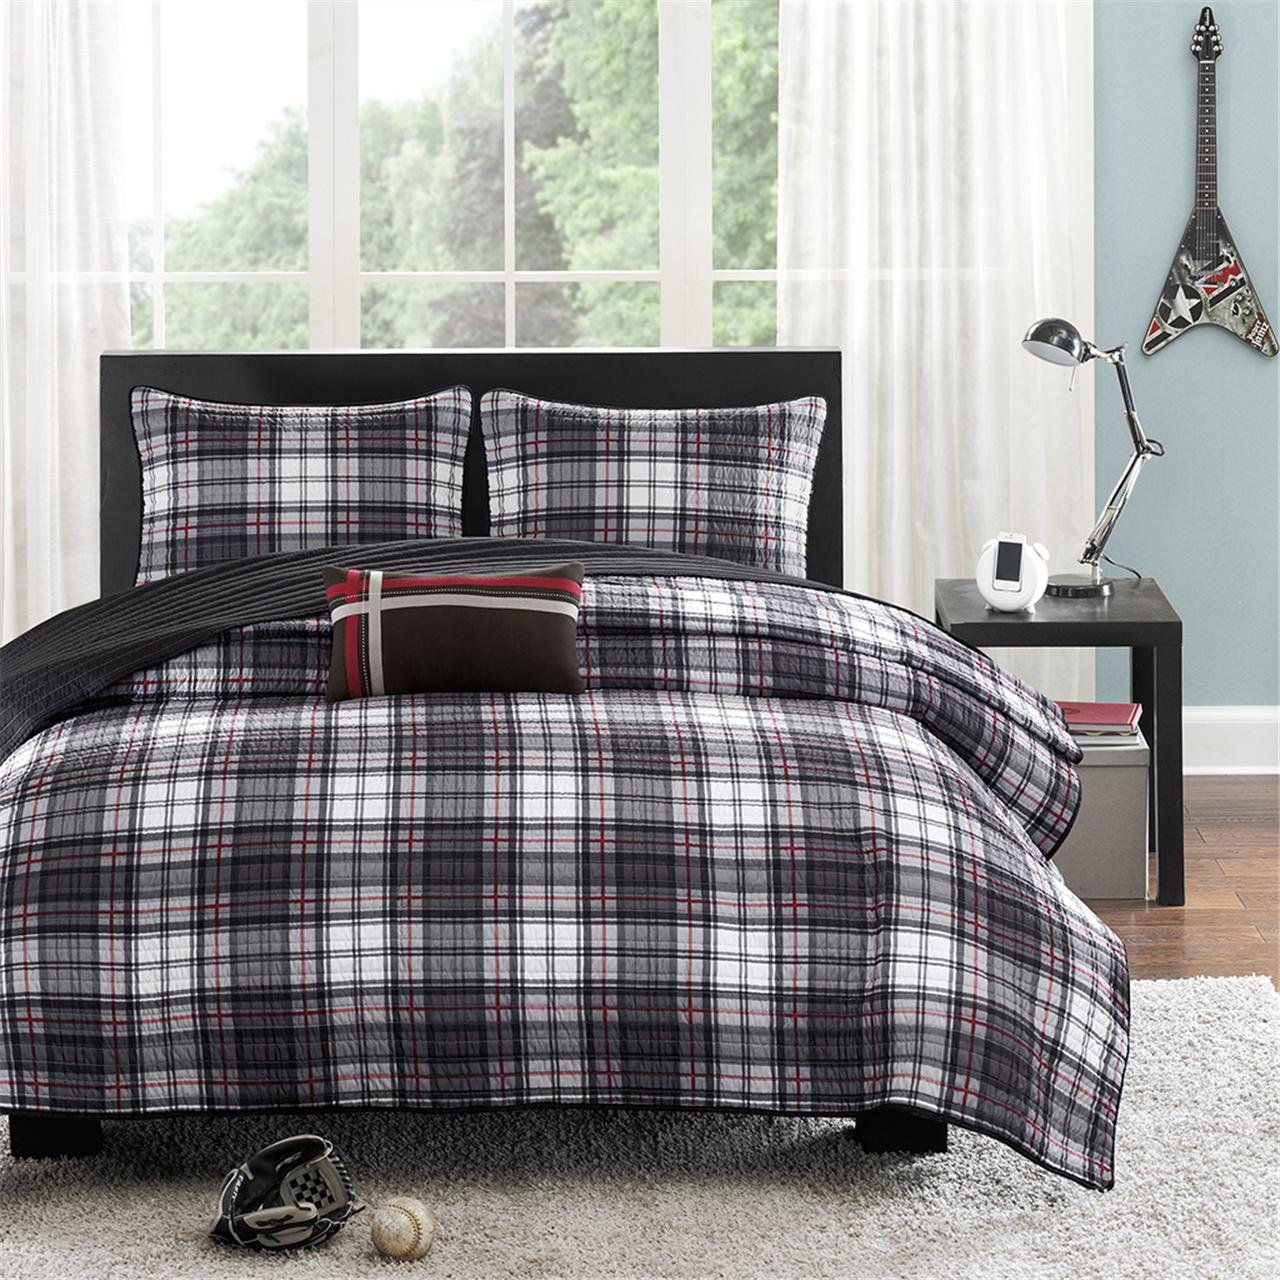 Mi-Zone Harley Twin/Twin XL Size Teen Boys Quilt Bedding Set - Black, Plaid - 3 Piece Boys Bedding Quilt Coverlets - Ultra Soft Microfiber Bed Quilts Quilted Coverlet by Mi-Zone